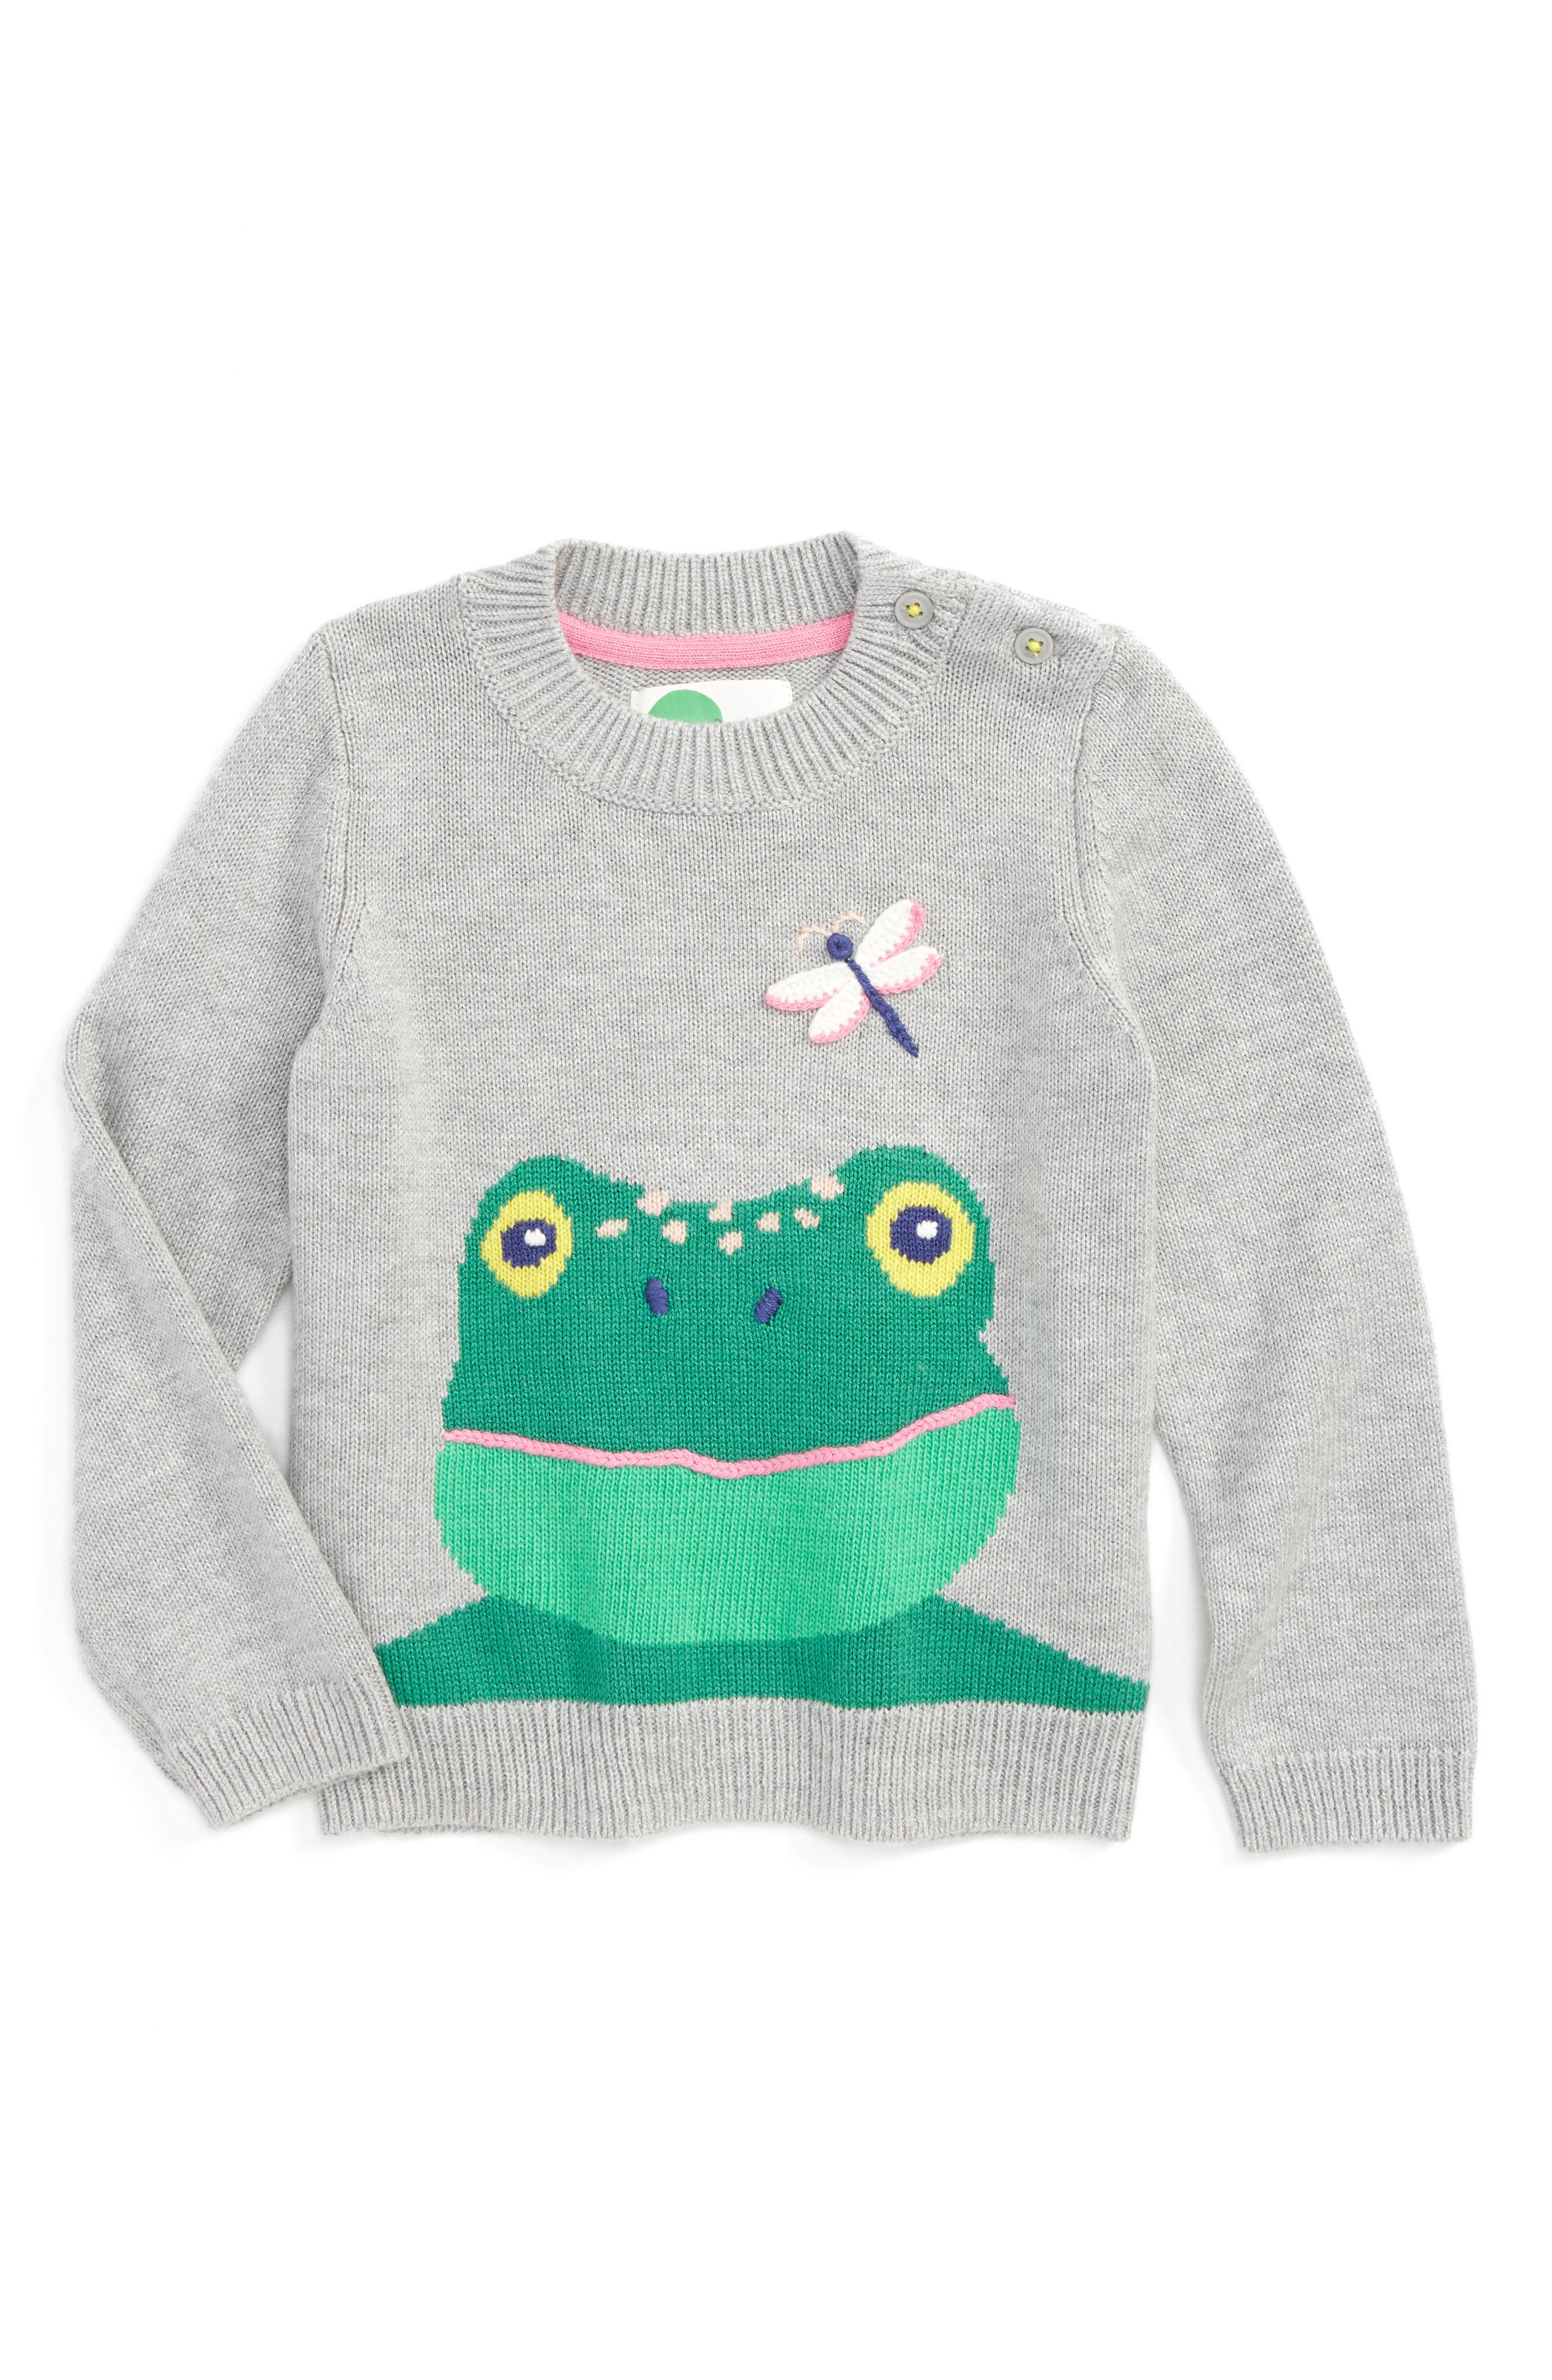 Fun Embroidered Sweater,                             Main thumbnail 1, color,                             Grey Frog